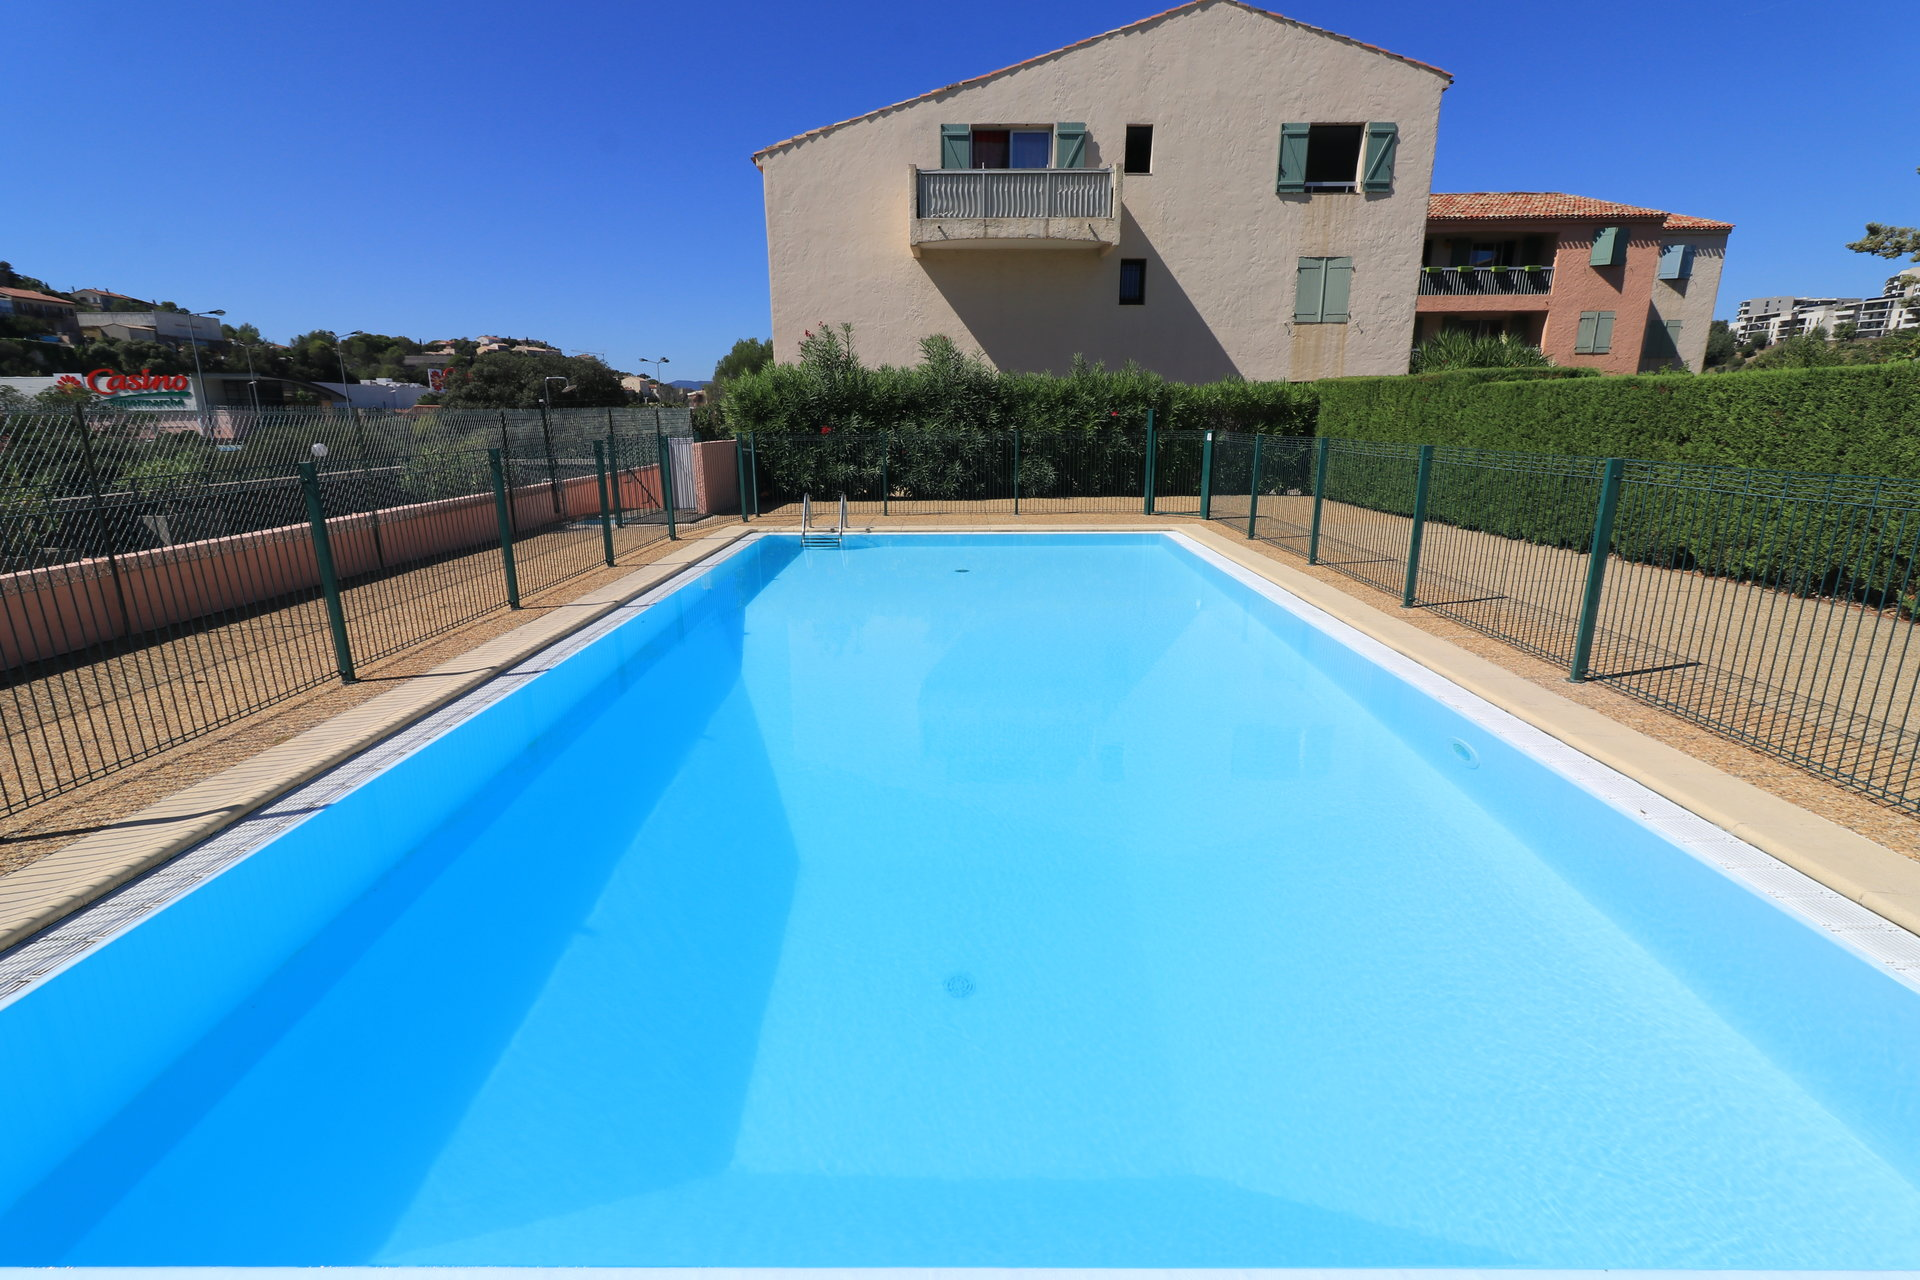 One bed apartment to renovate, close to shops, Le Peyron area in Saint Raphaël